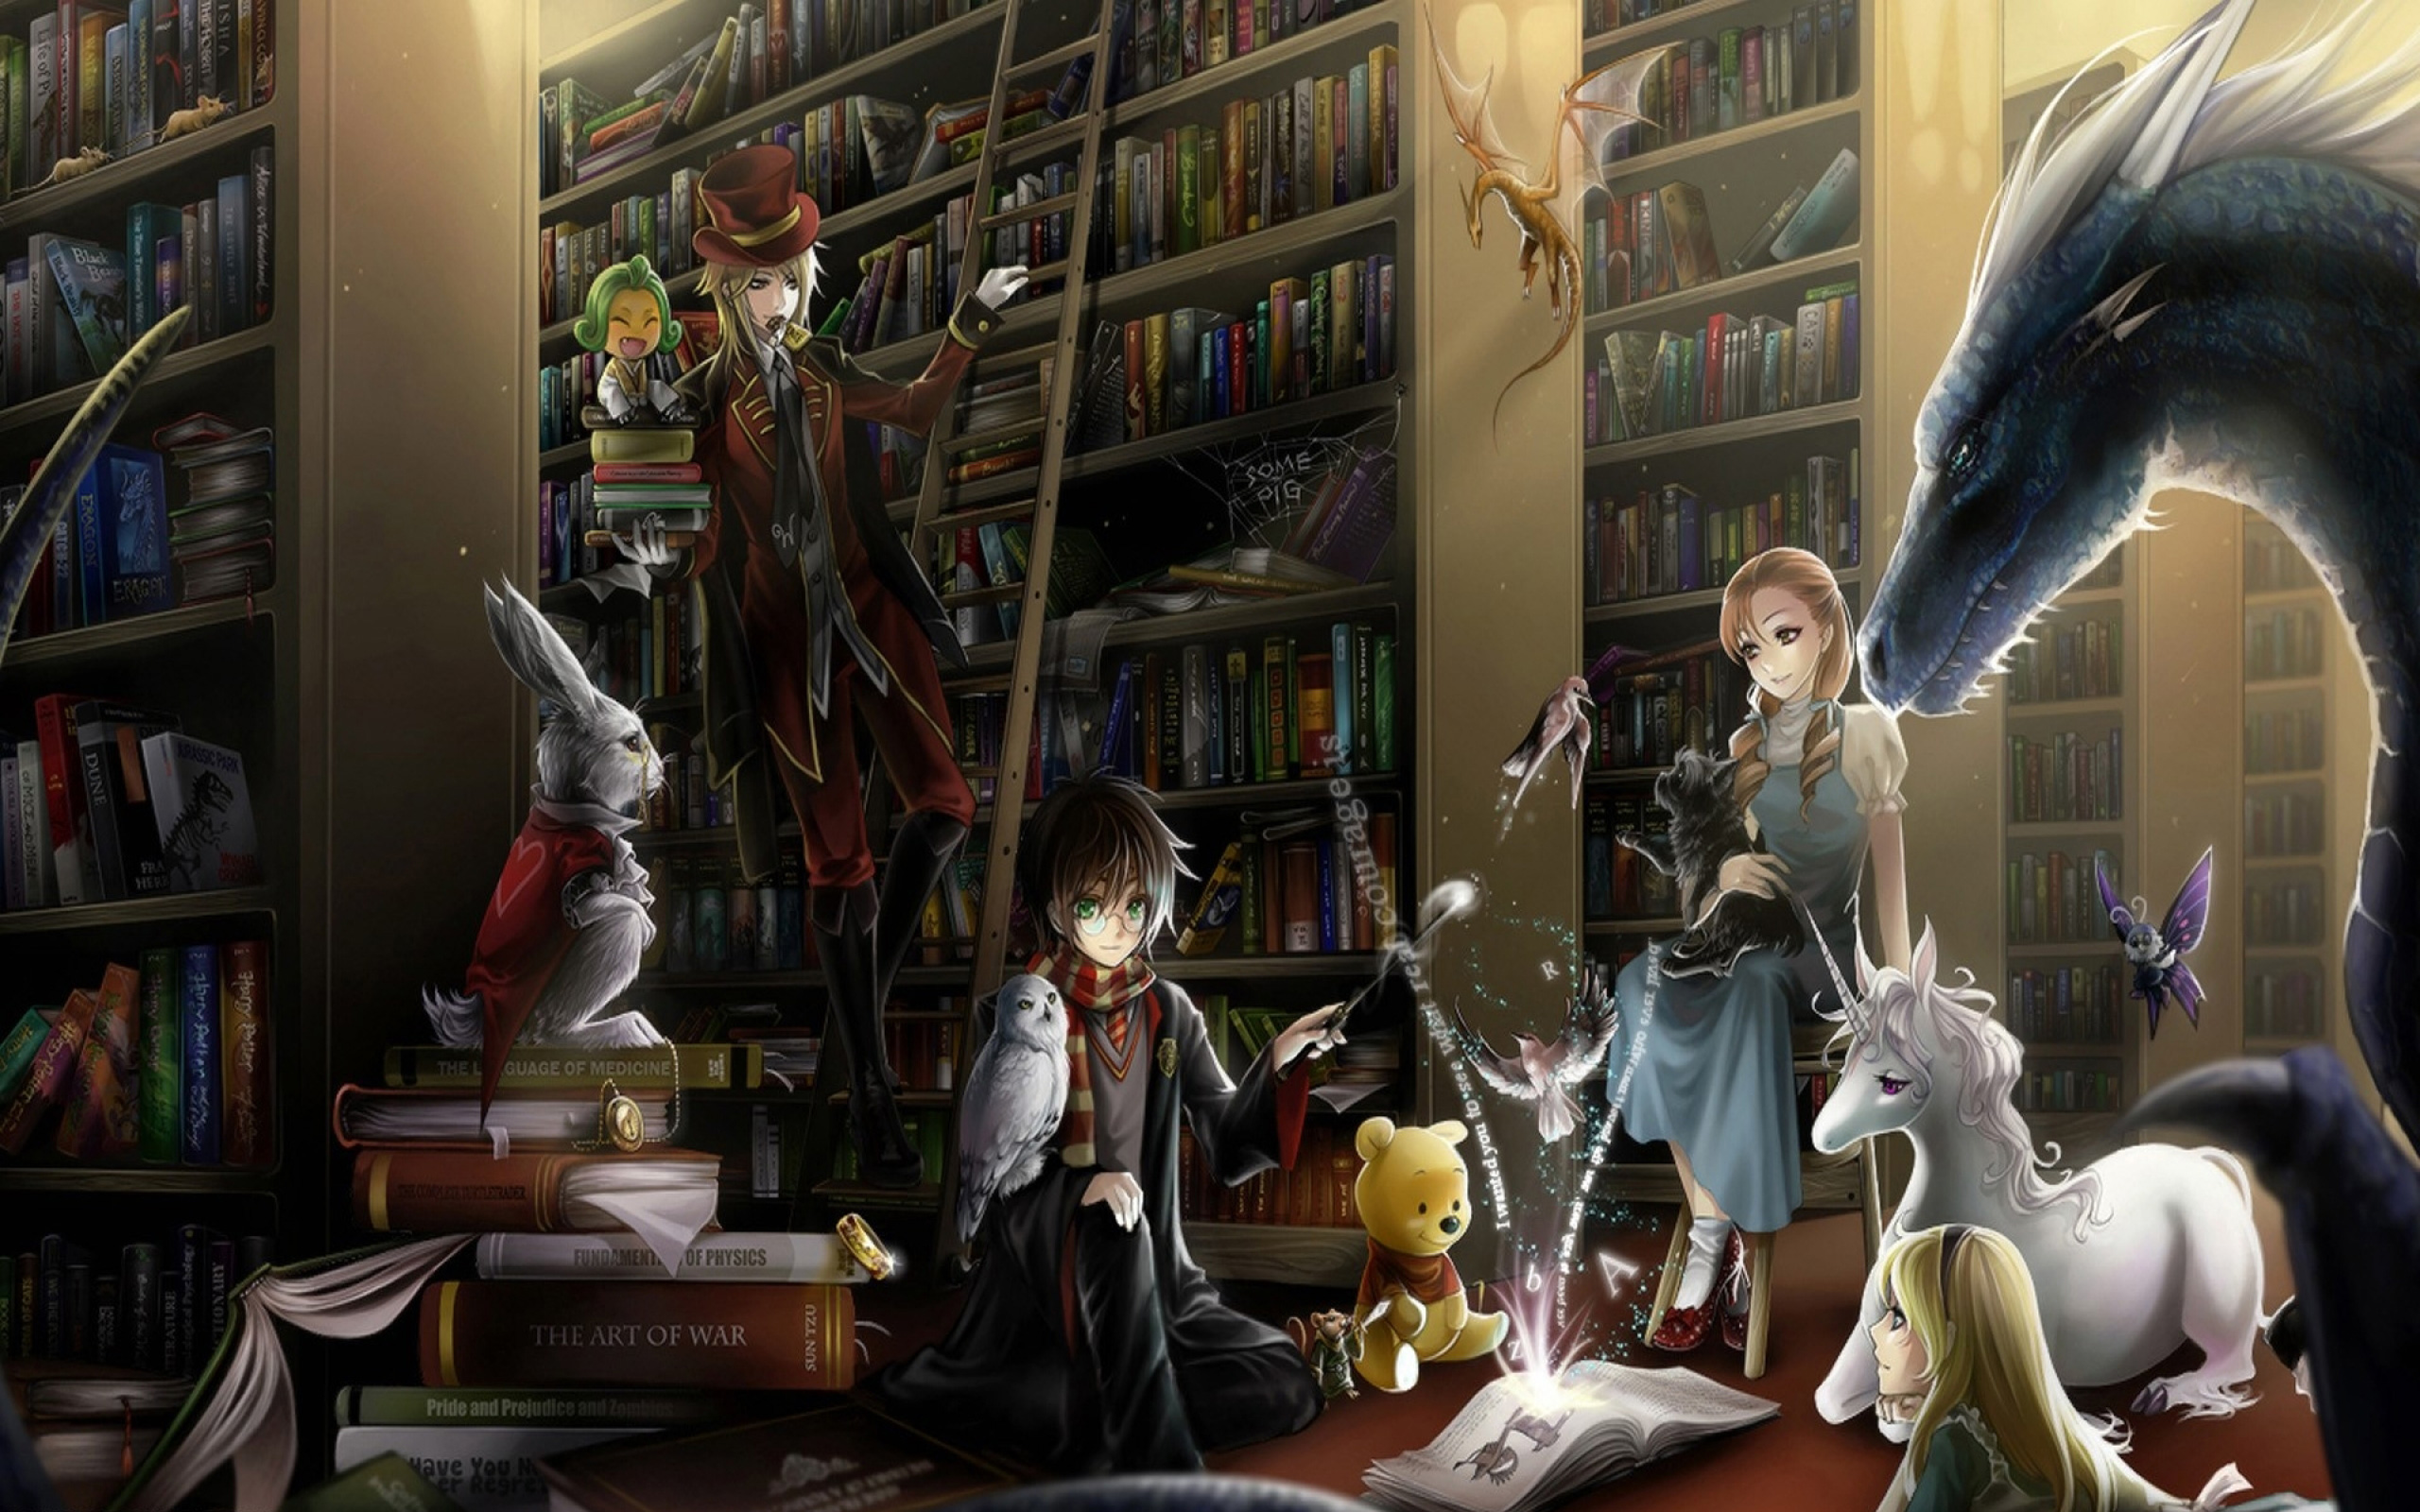 Library by OokamiKasumi on DeviantArt